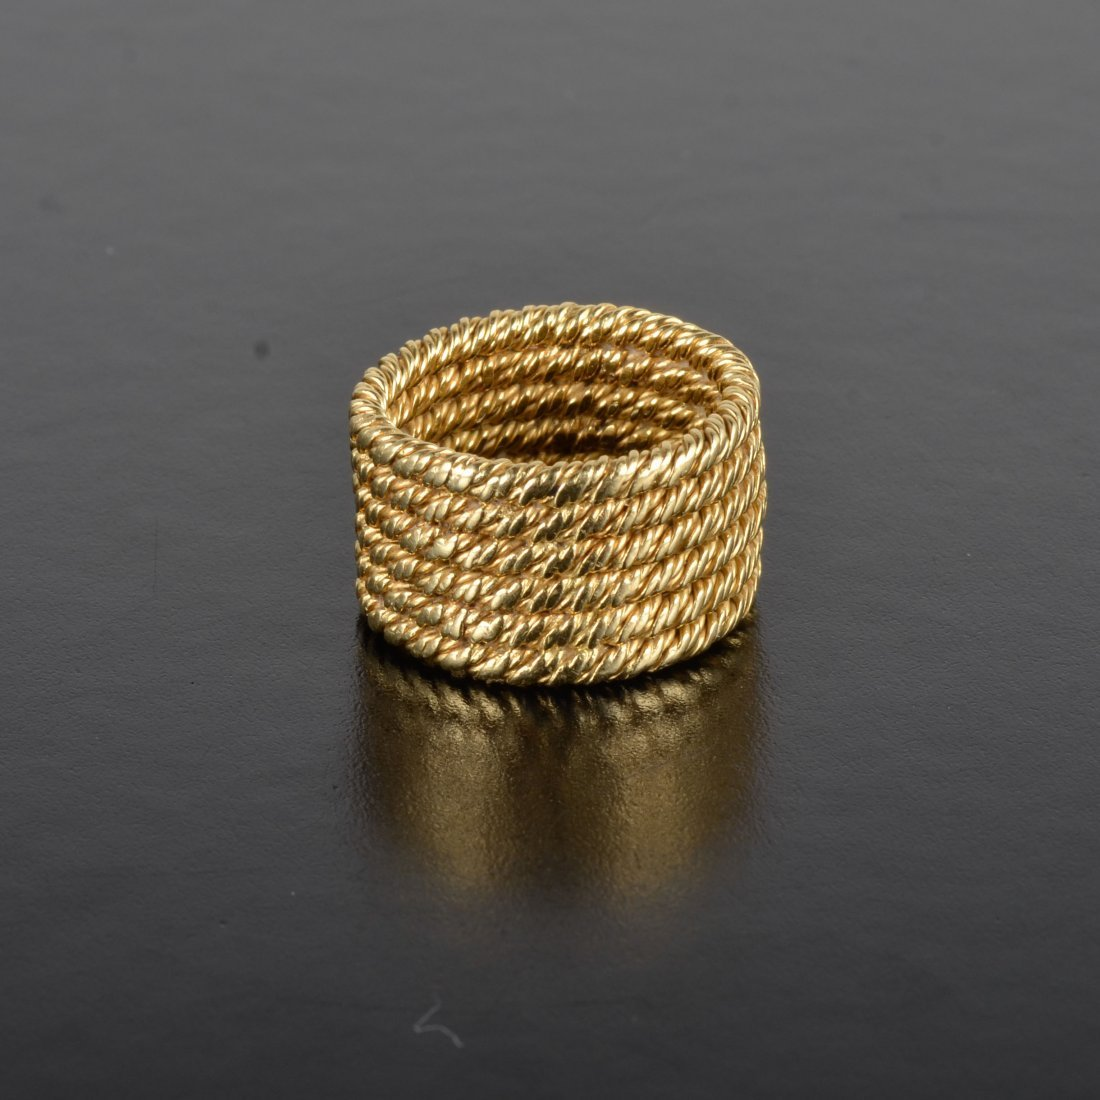 Tiffany gold rope style ring